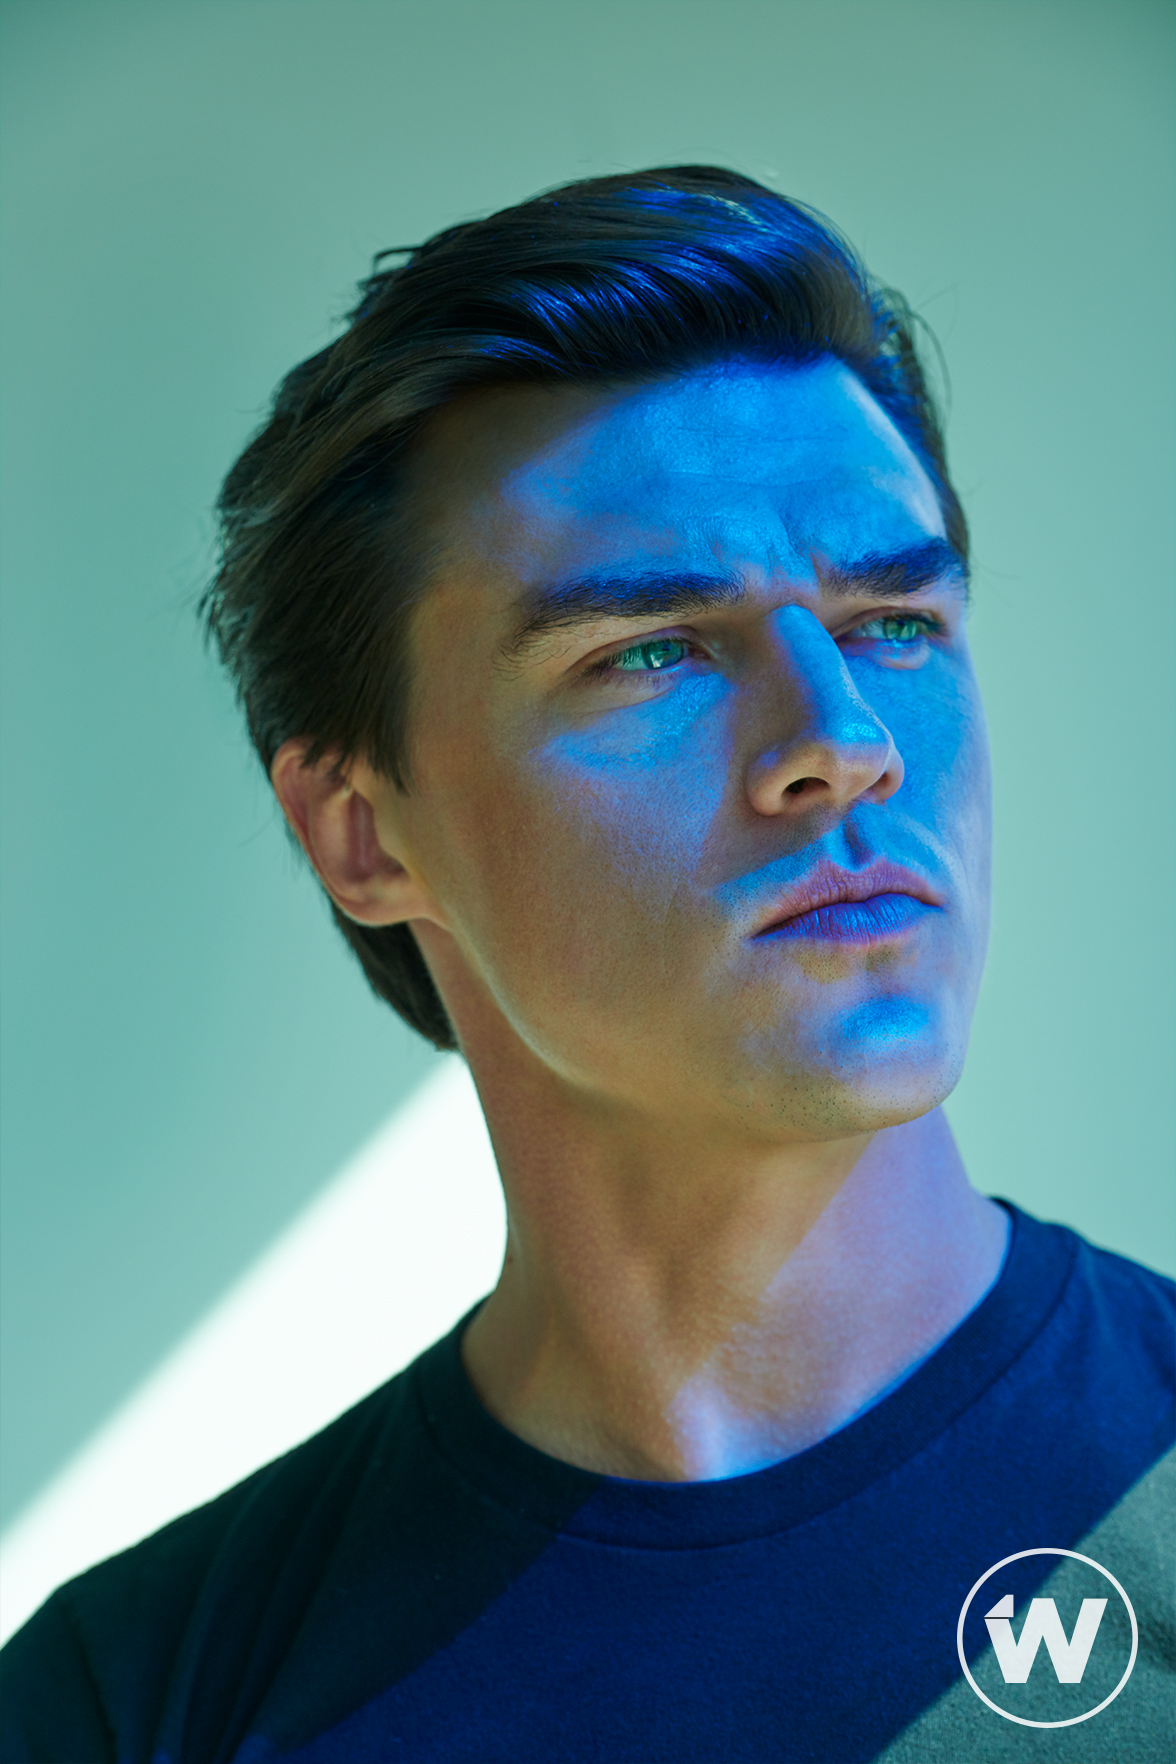 Finn Wittrock, The Assassination of Gianni Versace: Crime Story